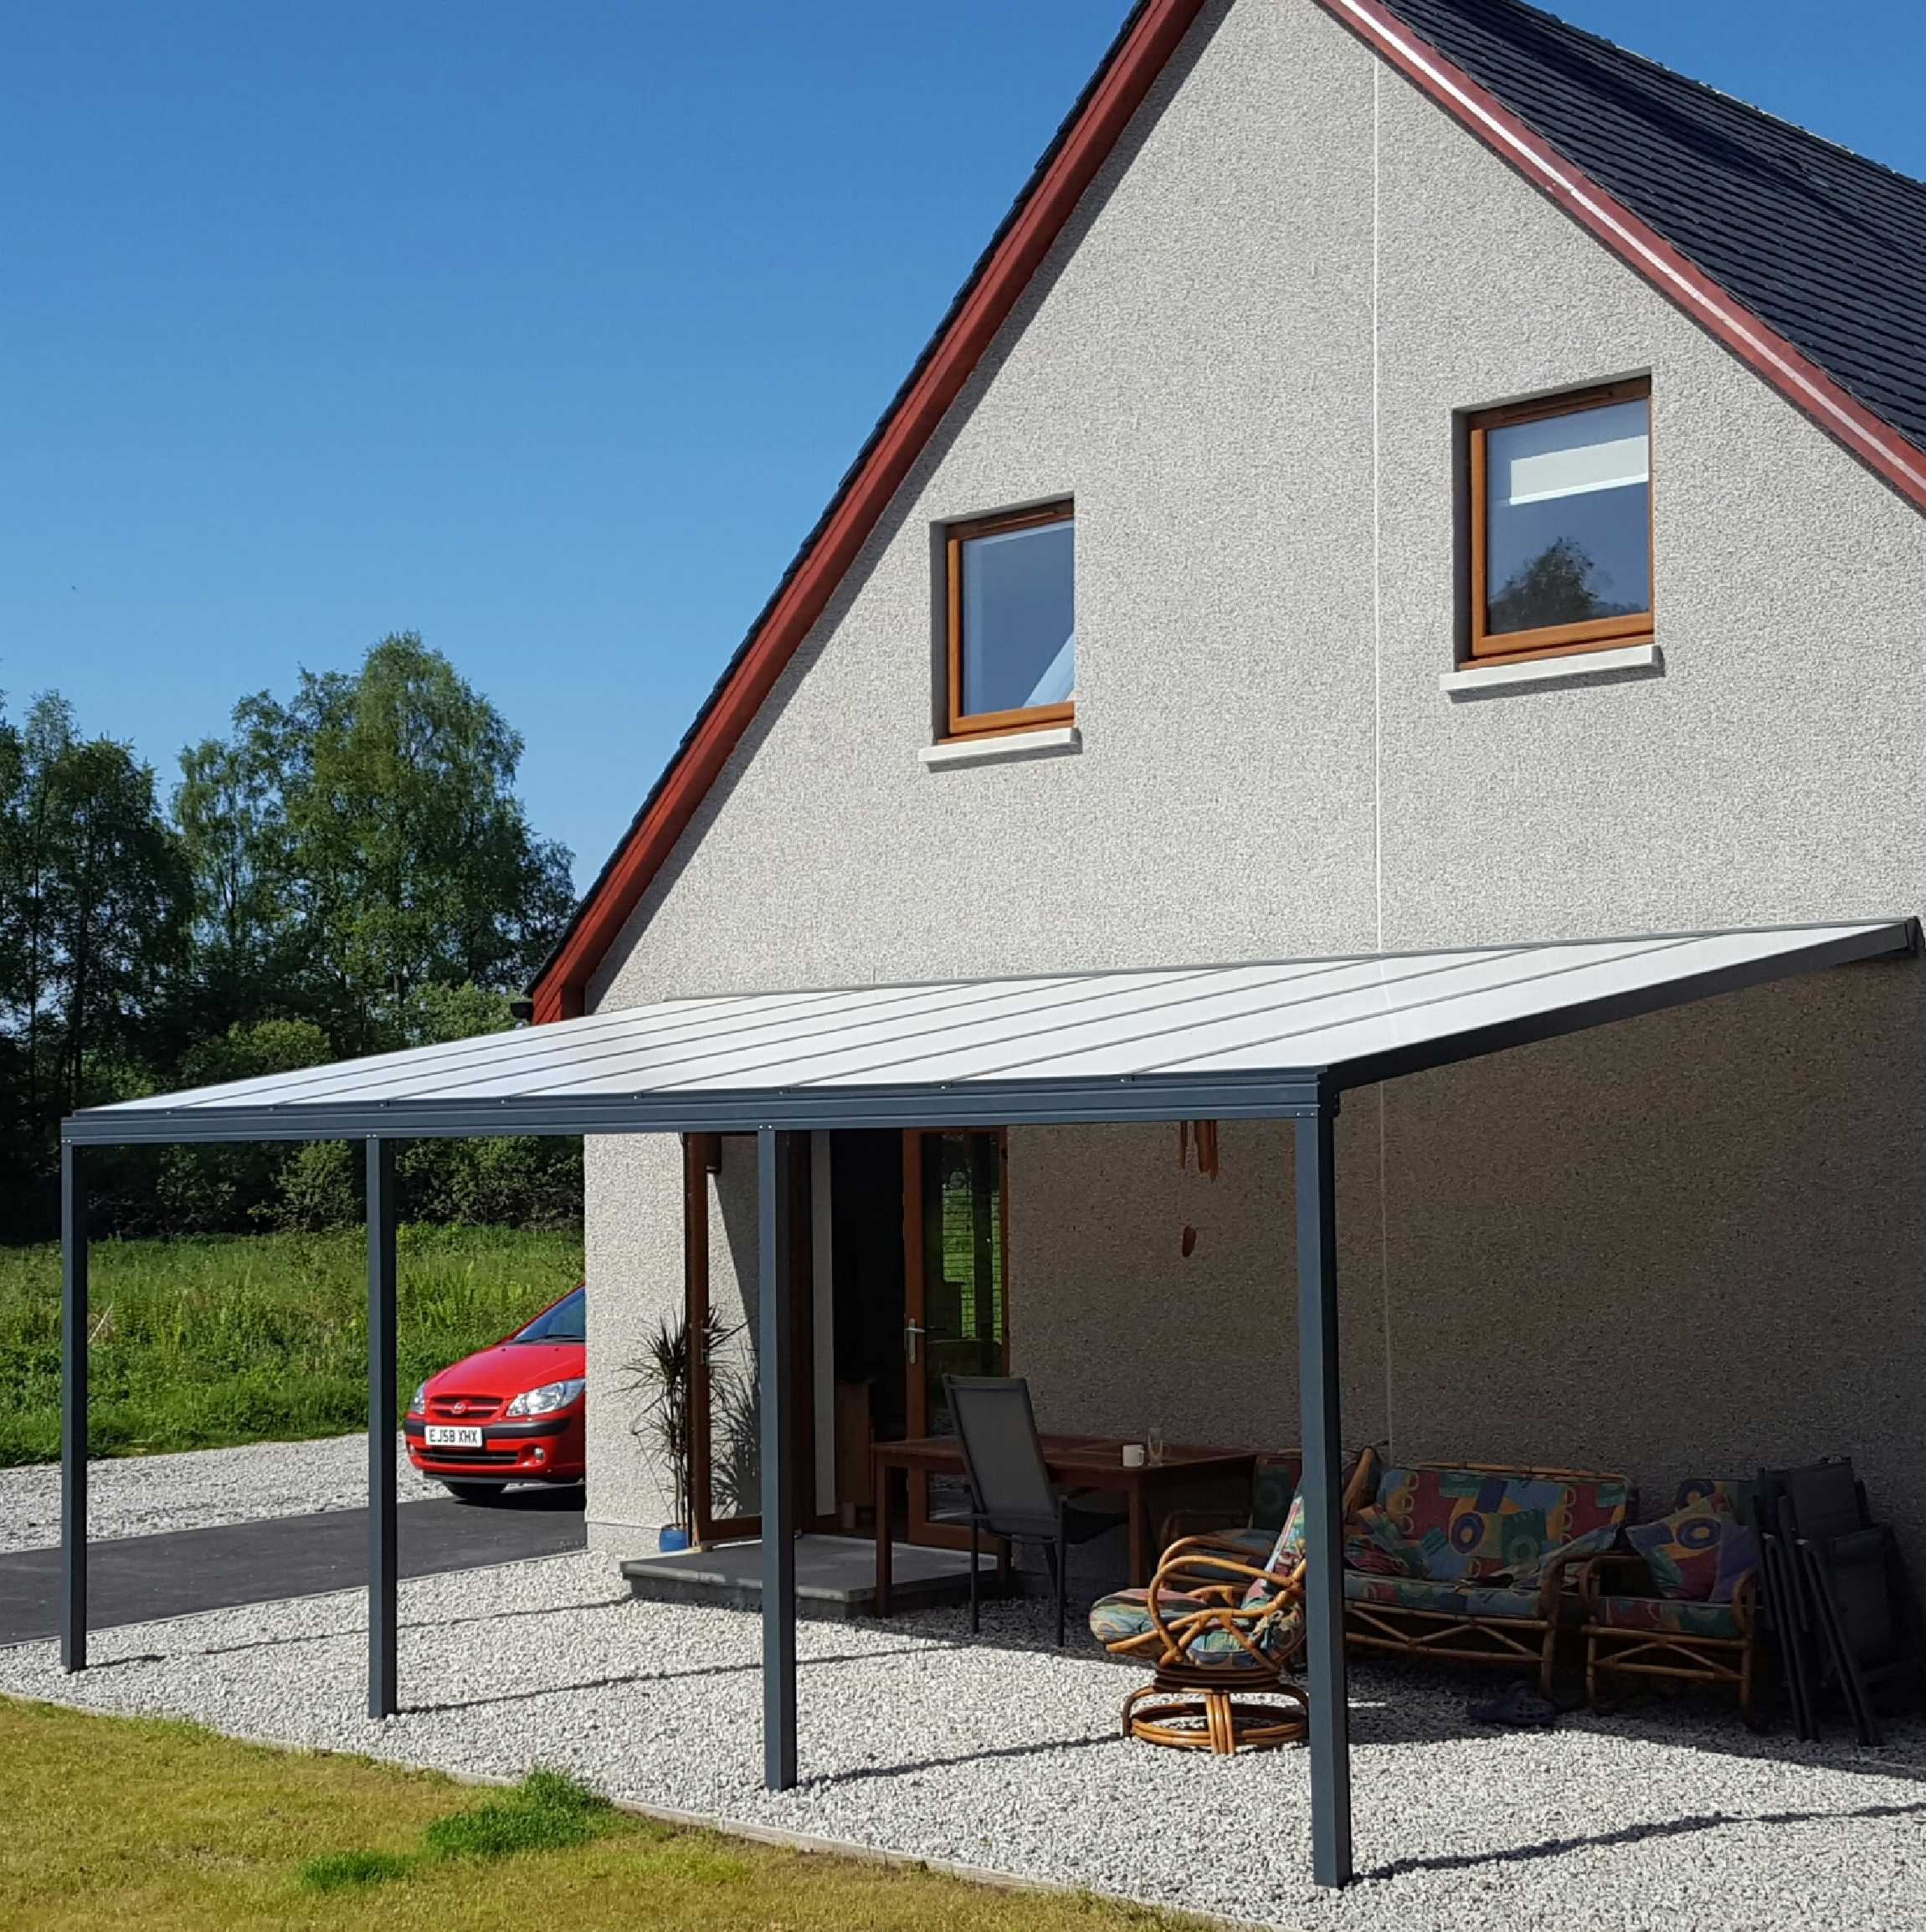 Great selection of Omega Smart Lean-To Canopy, Anthracite Grey, 16mm Polycarbonate Glazing - 6.0m (W) x 3.5m (P), (3) Supporting Posts